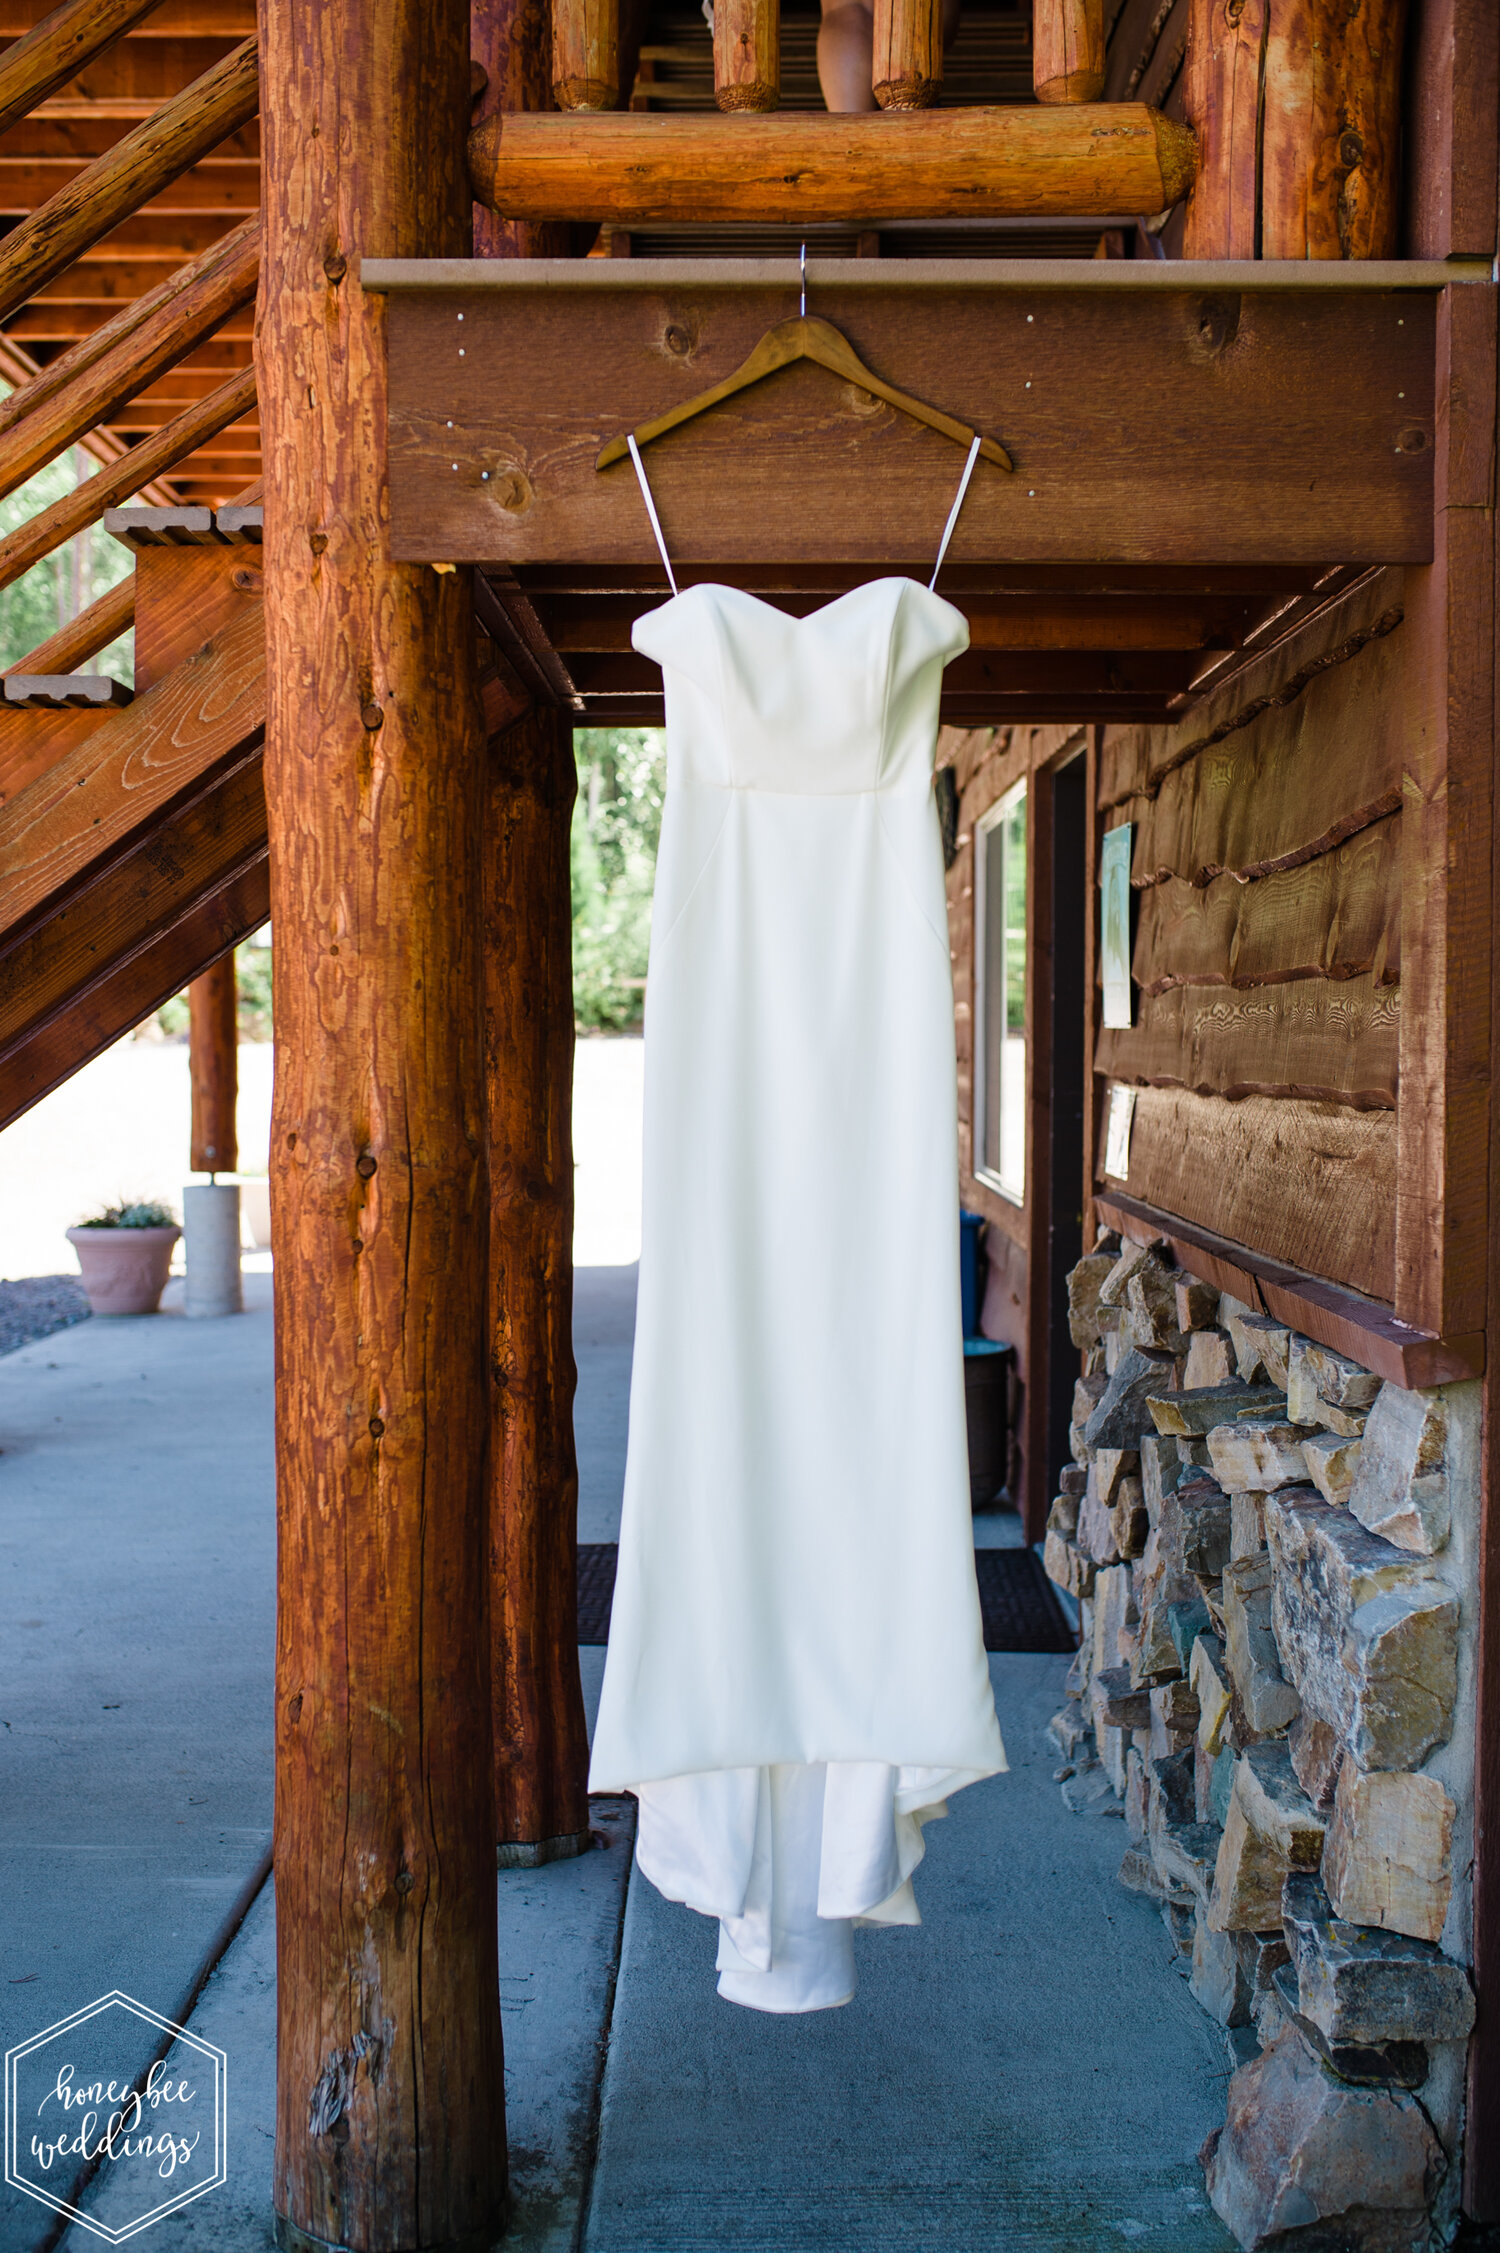 003Glacier National Park Wedding_Glacier Outdoor Center_Honeybee Weddings_Anna & Seth_July 21, 2019-1700.jpg